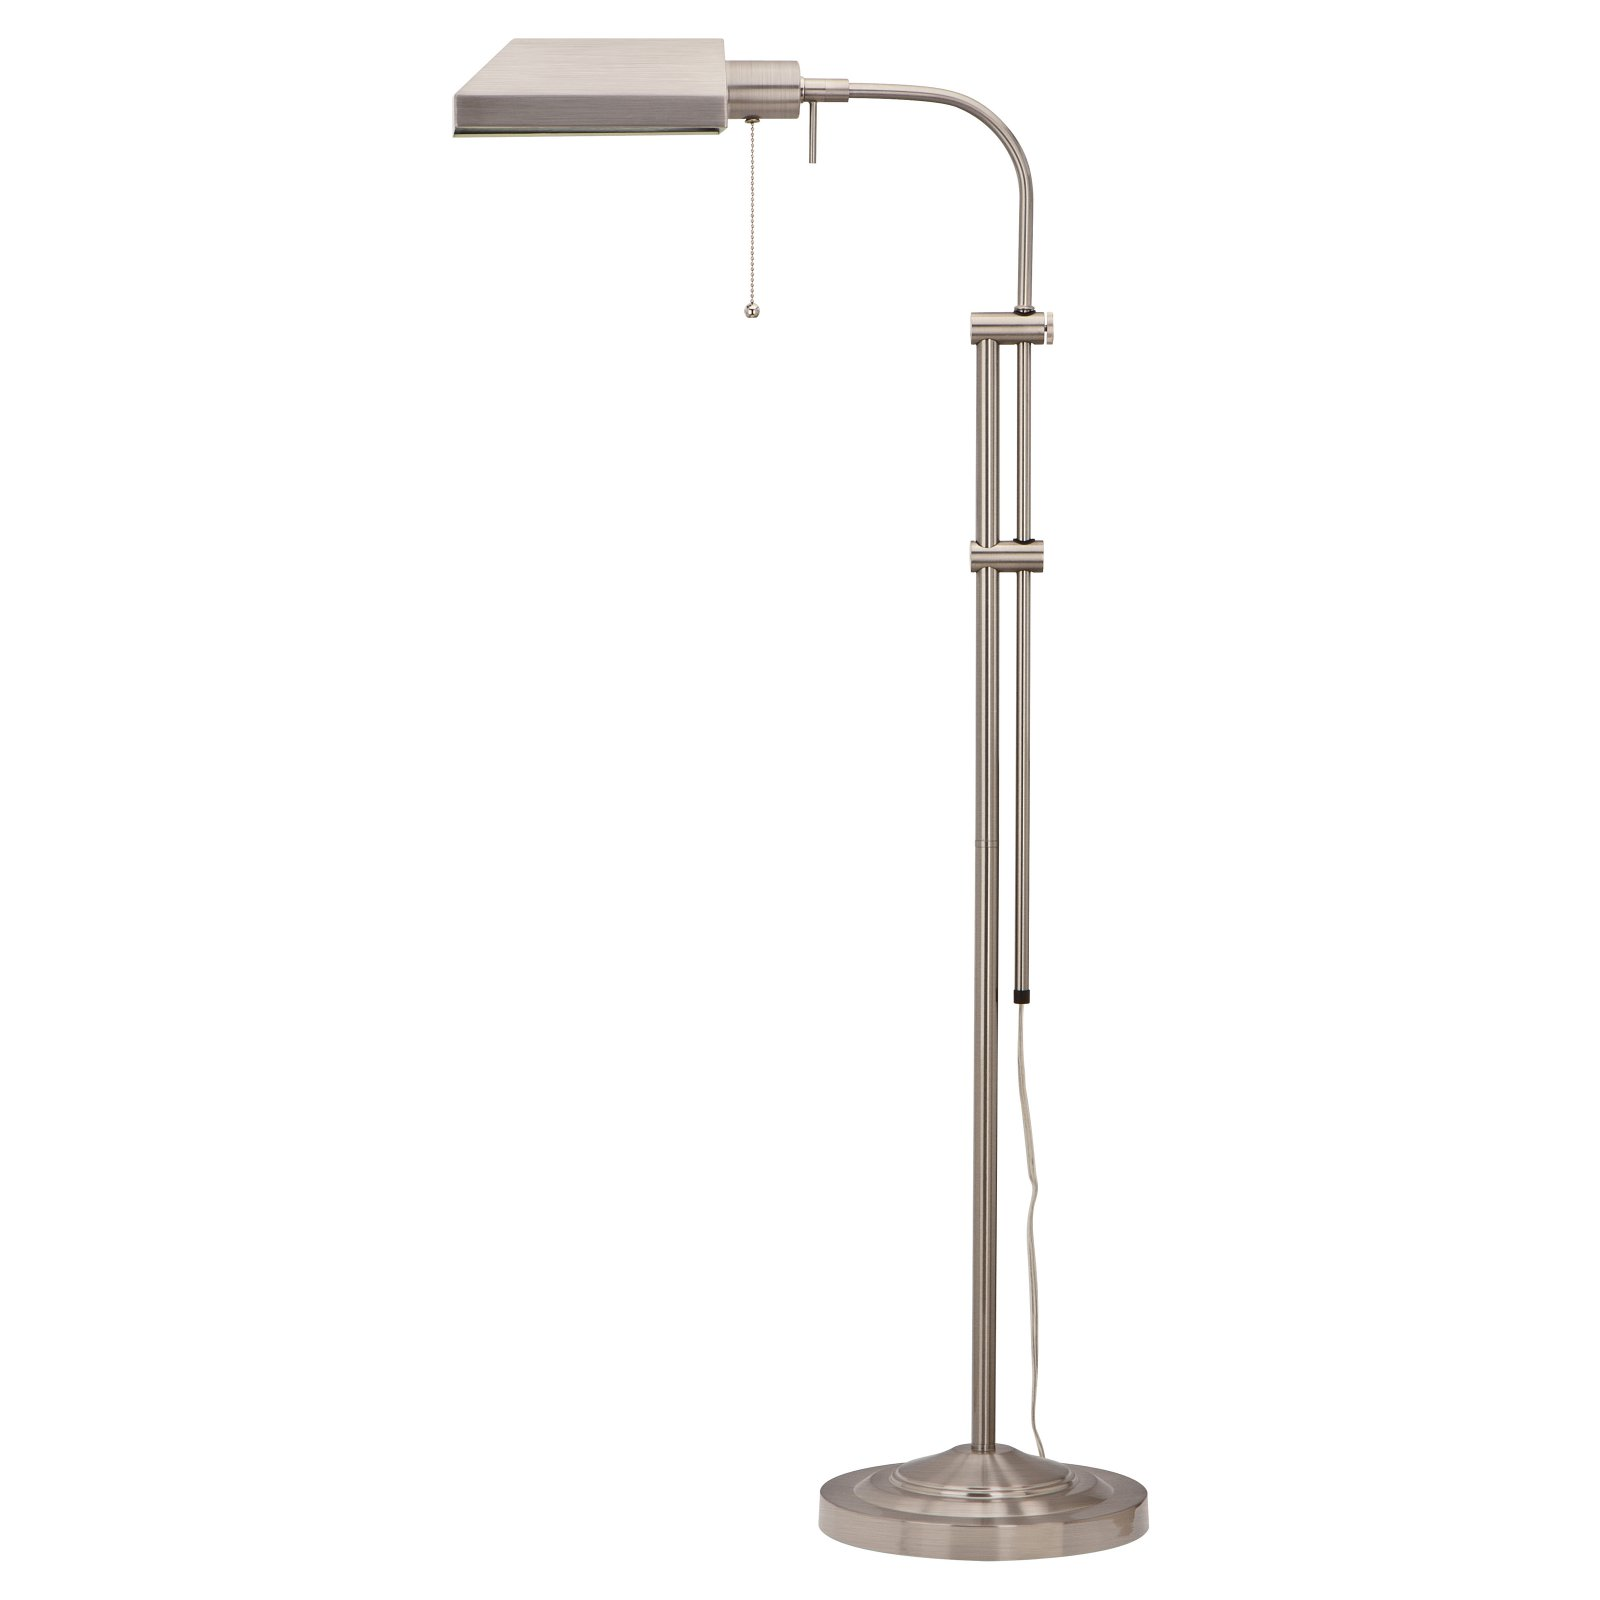 Cal Lighting BO-117FL Pharmacy Floor Lamp with Adjustable Pole